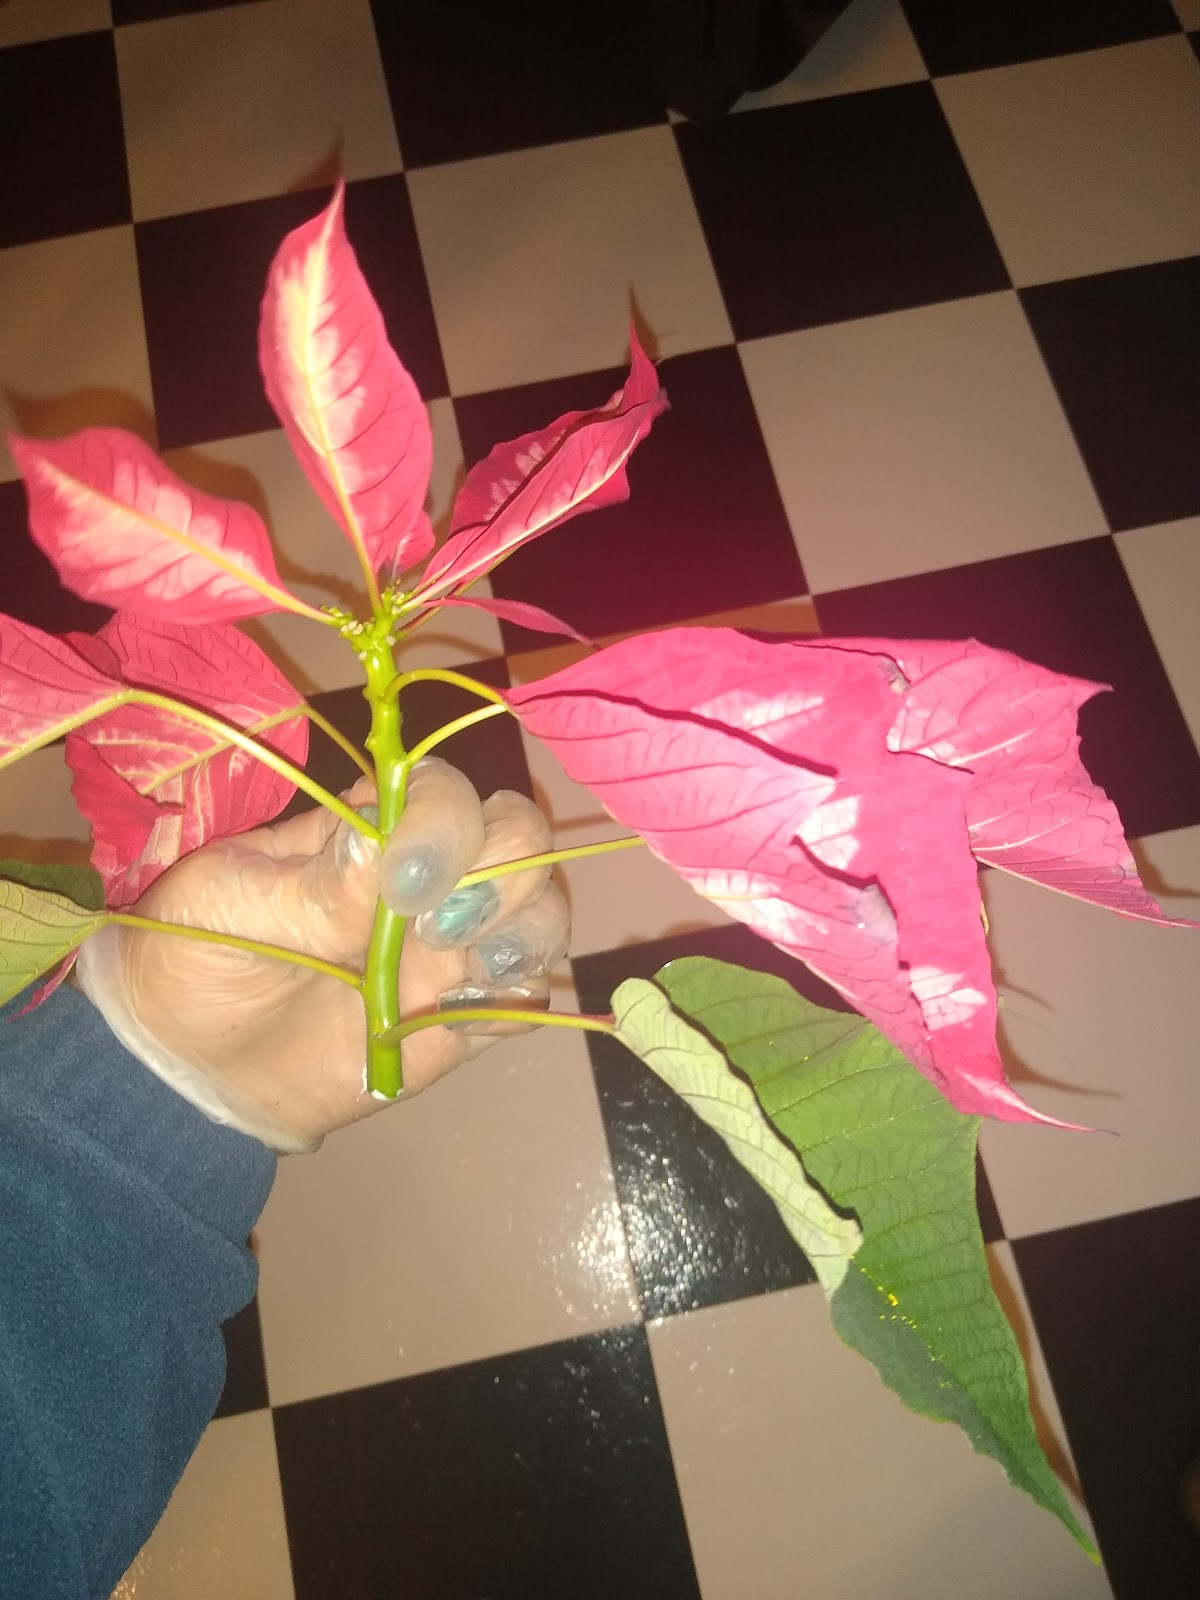 cut poinsettia branch image